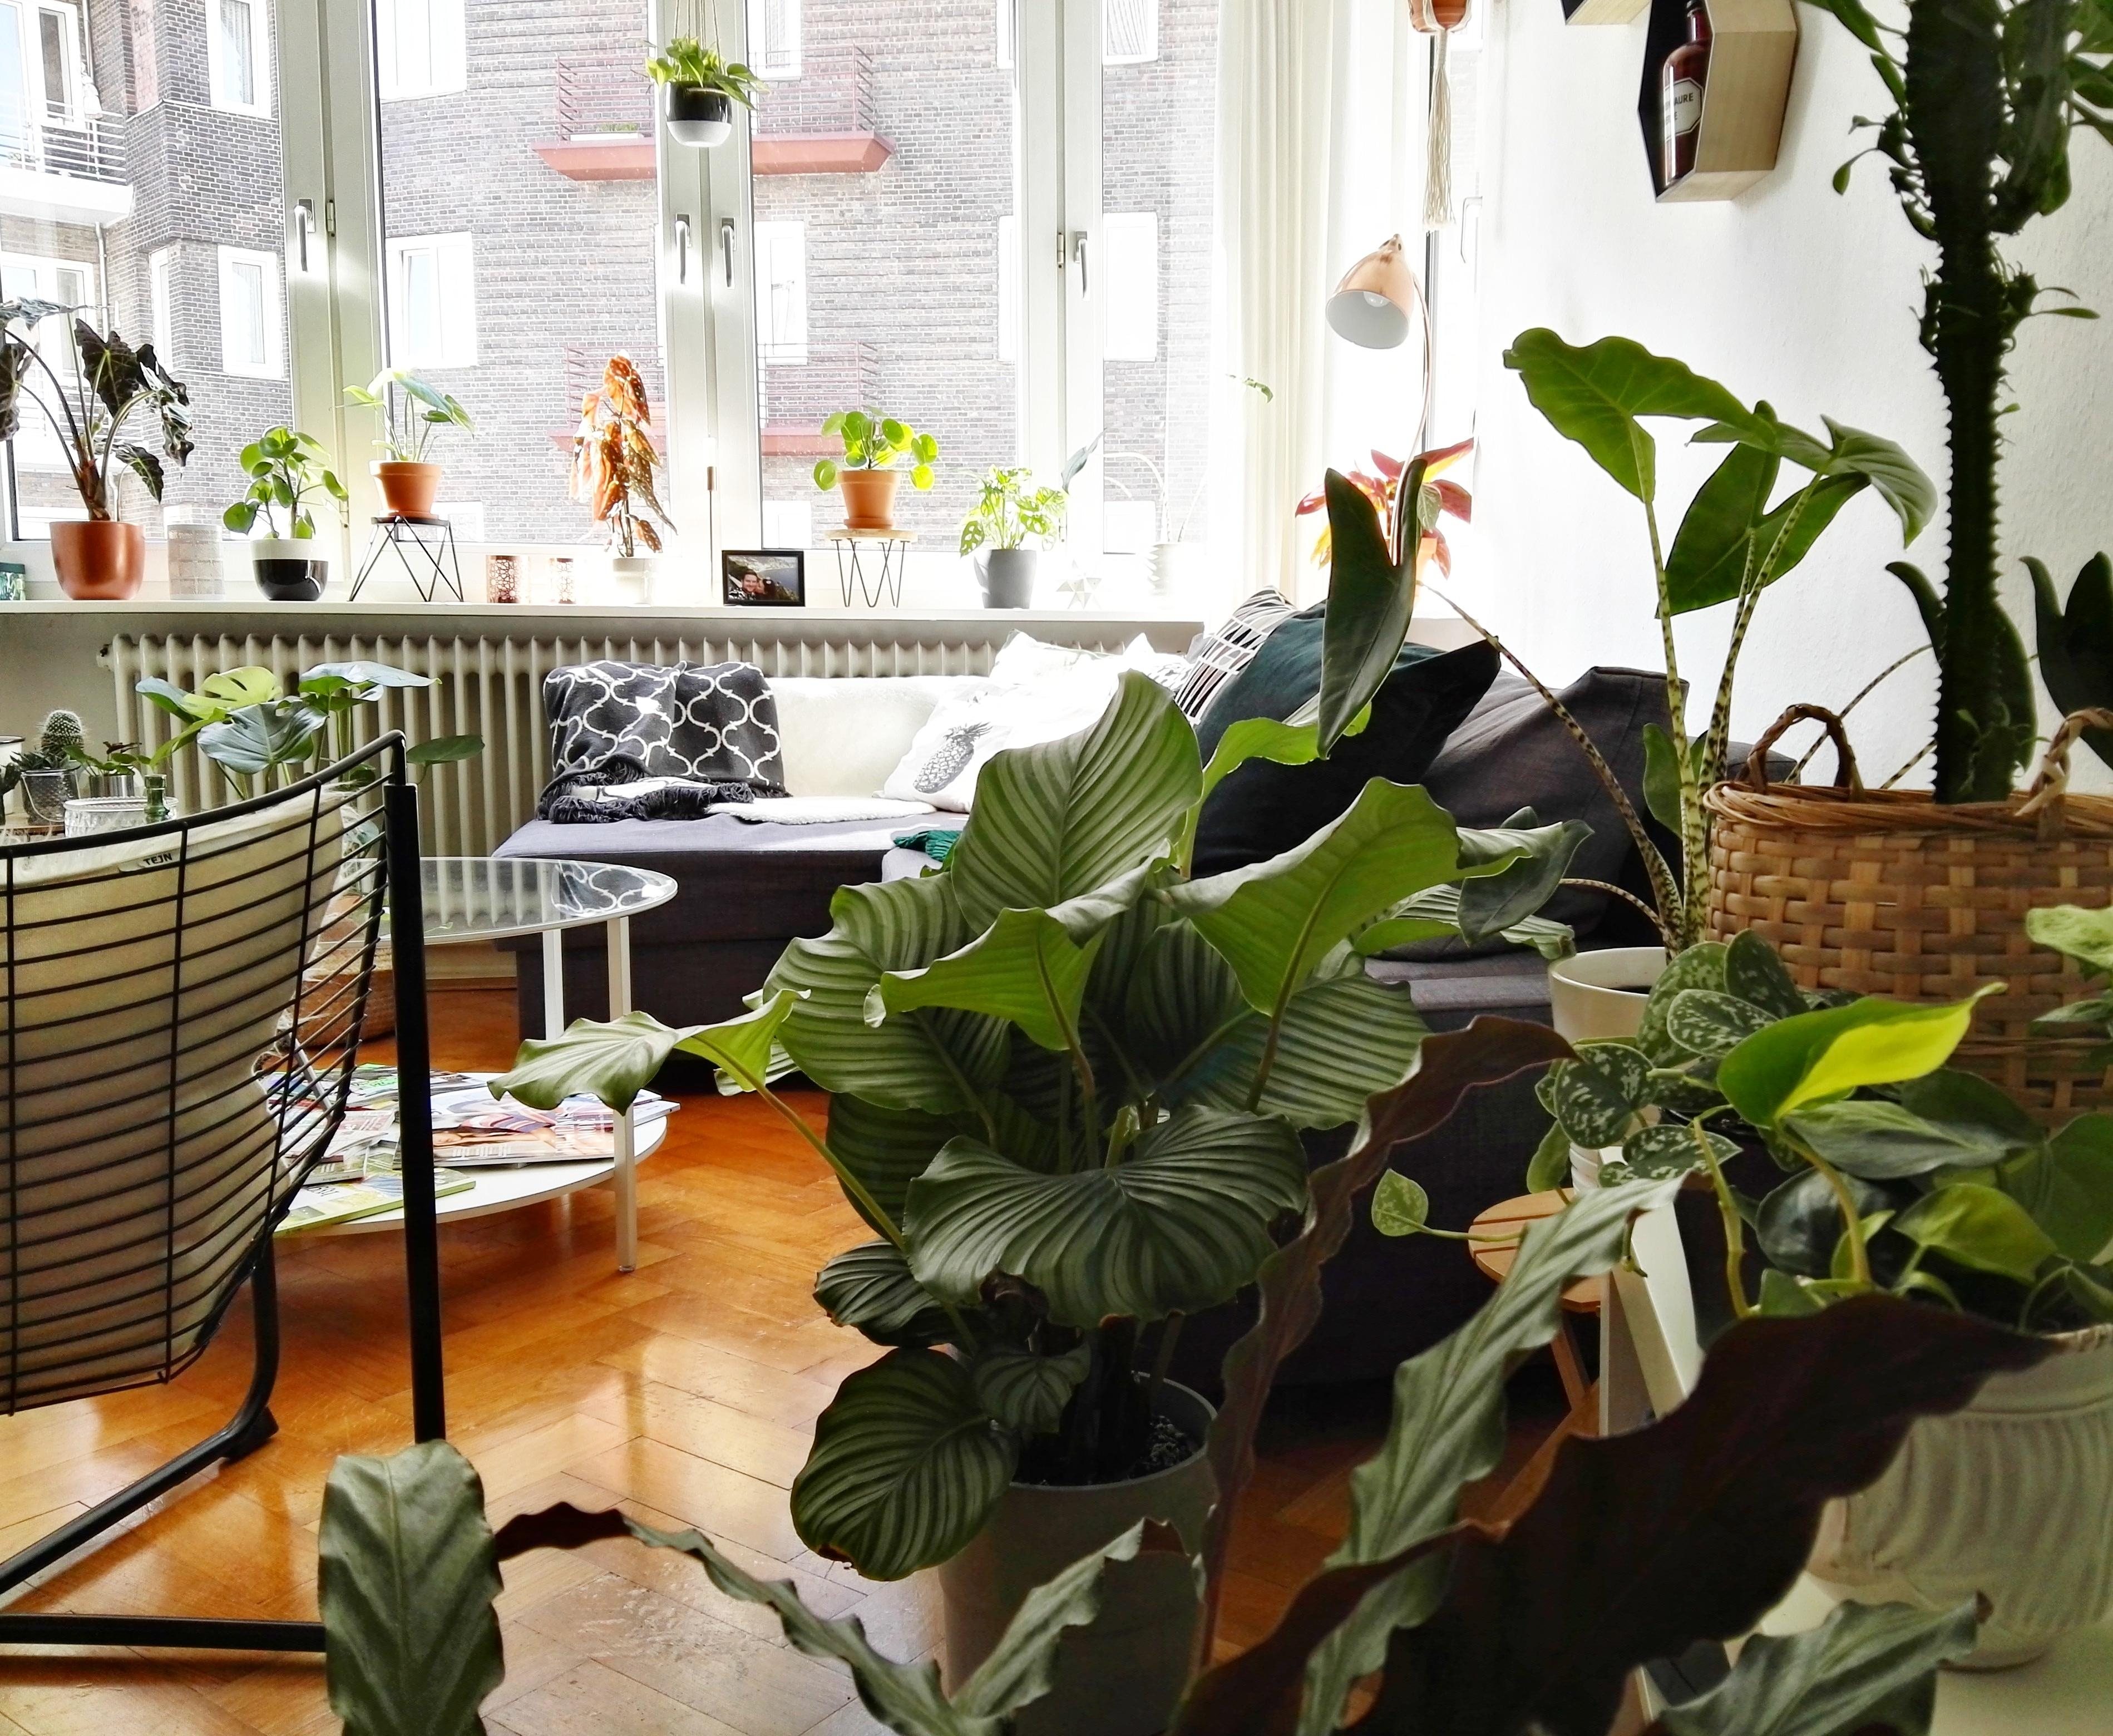 Pflanzen Teil 1 #interior #livingroom #urbanjungle #plantlover